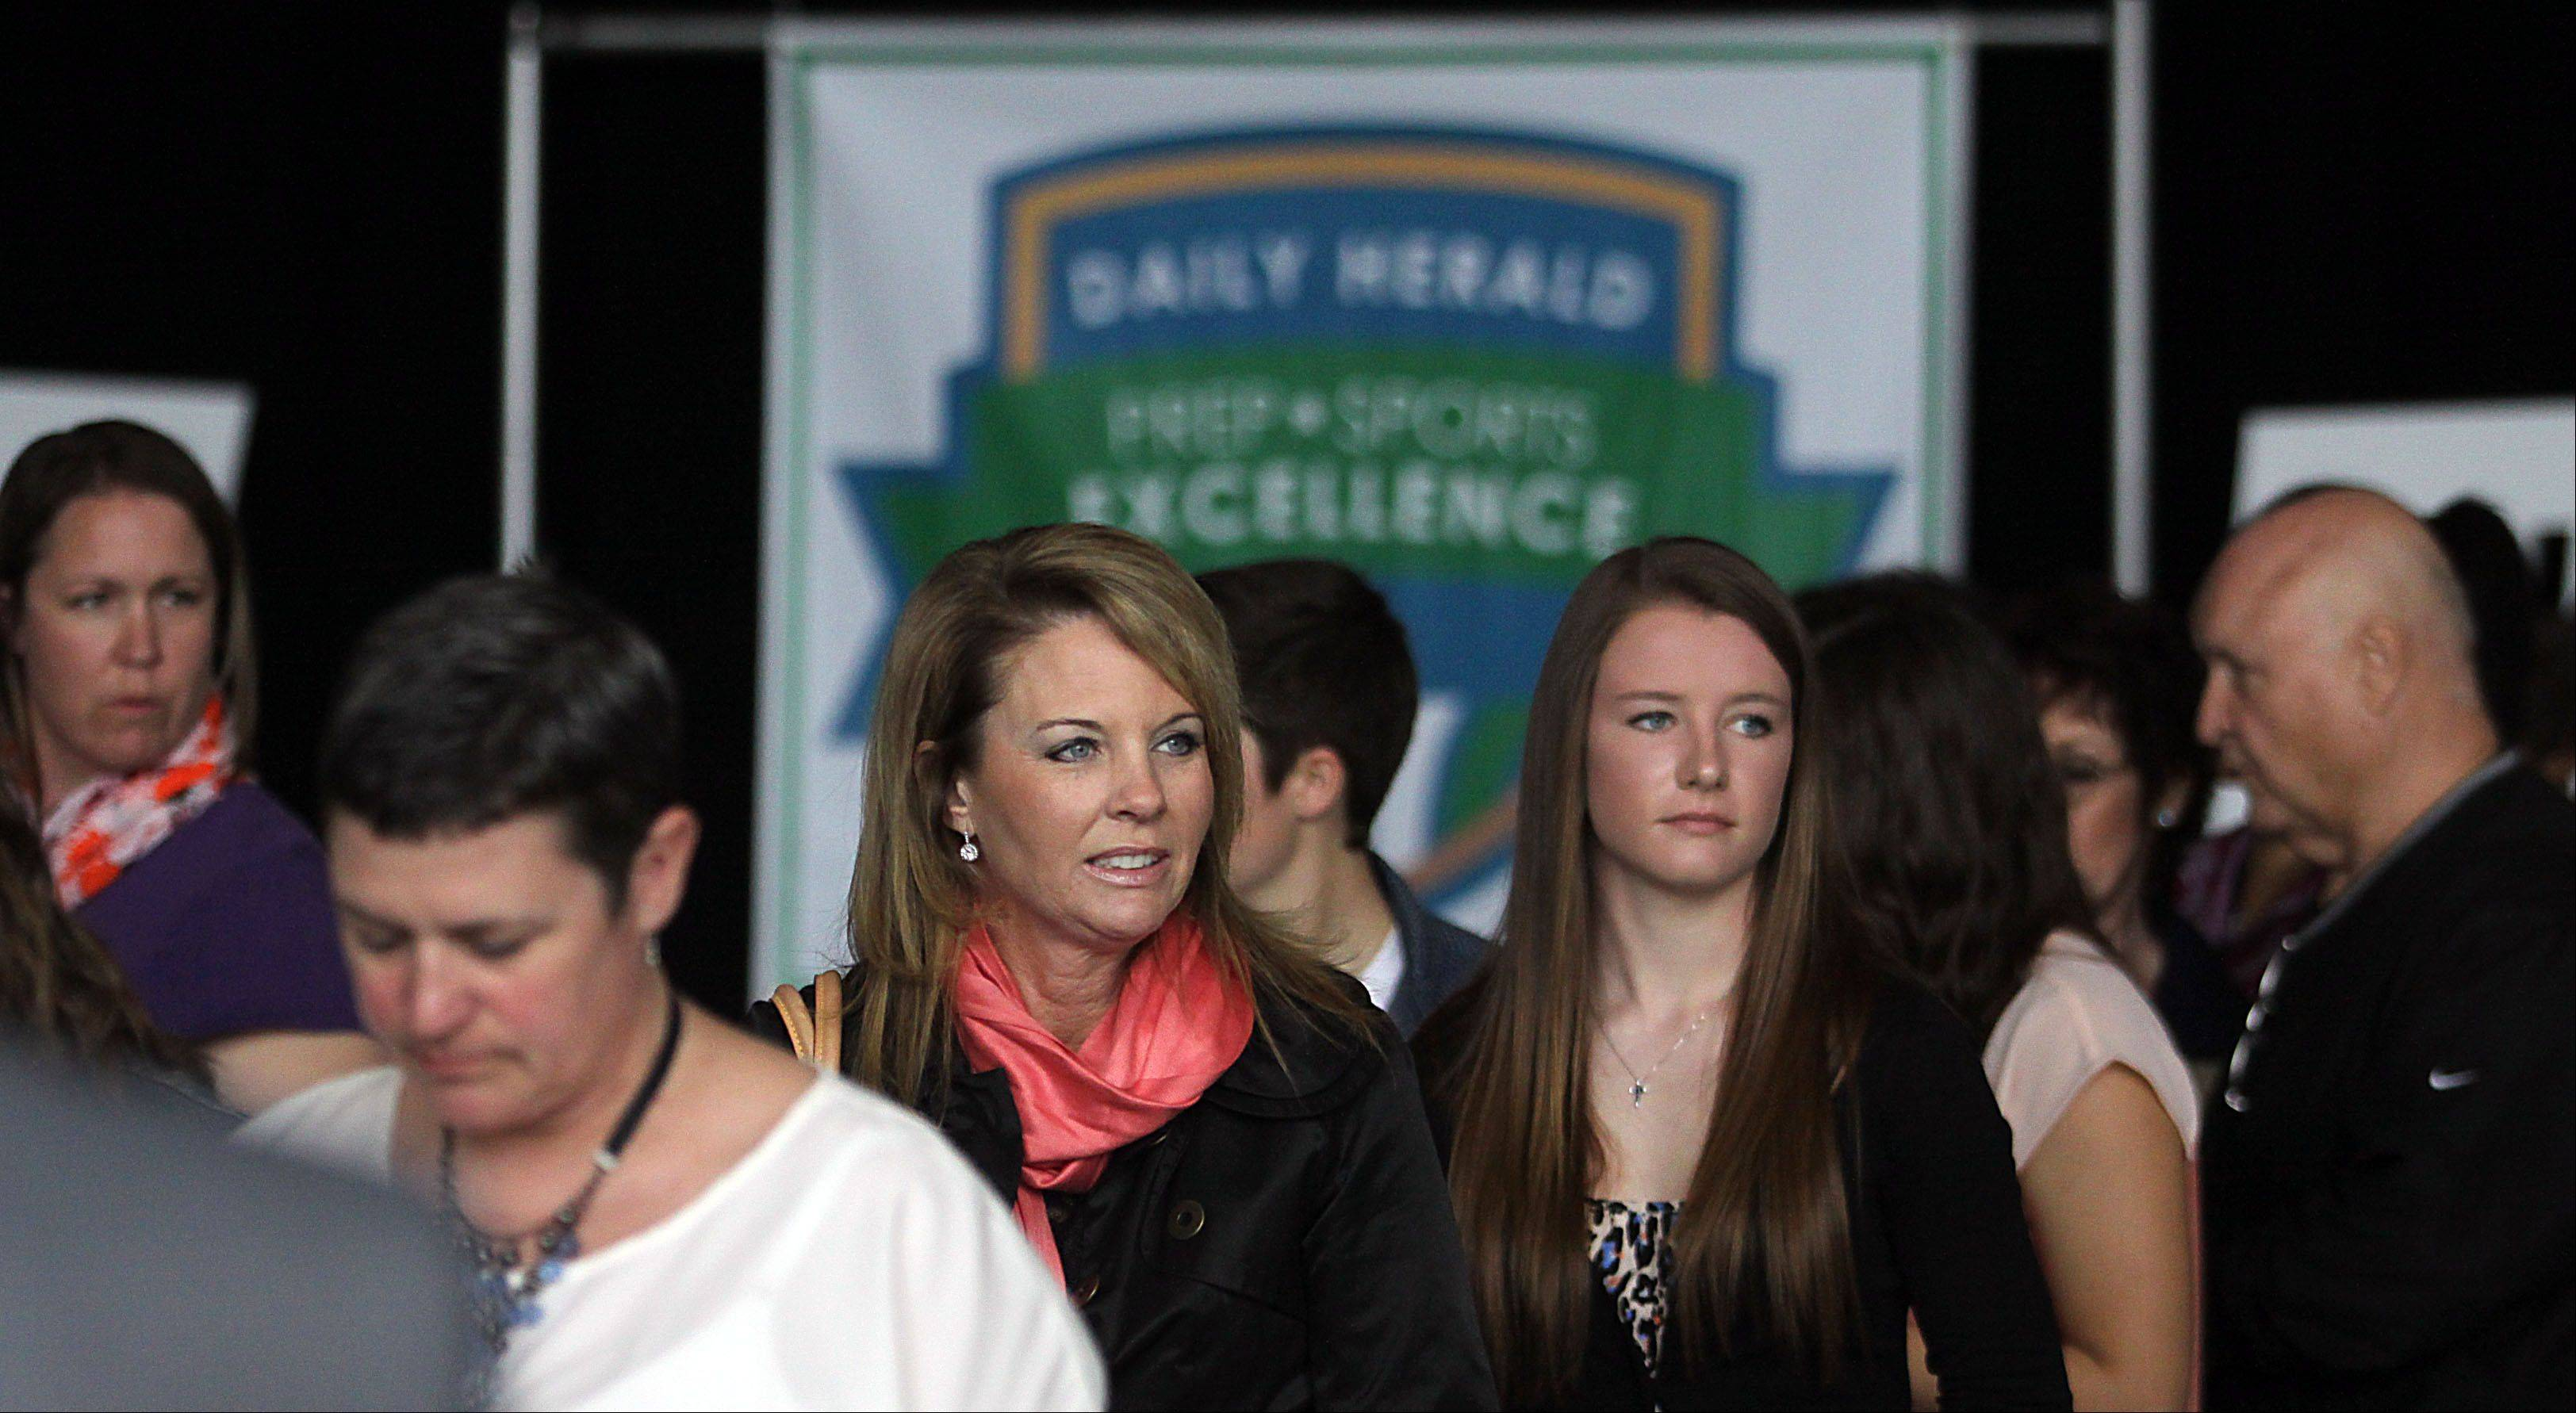 Participants and honorees arrive during the Daily Herald Prep Sports Excellence Awards Ceremony at Sears Centre Arena in Hoffman Estates on Sunday.